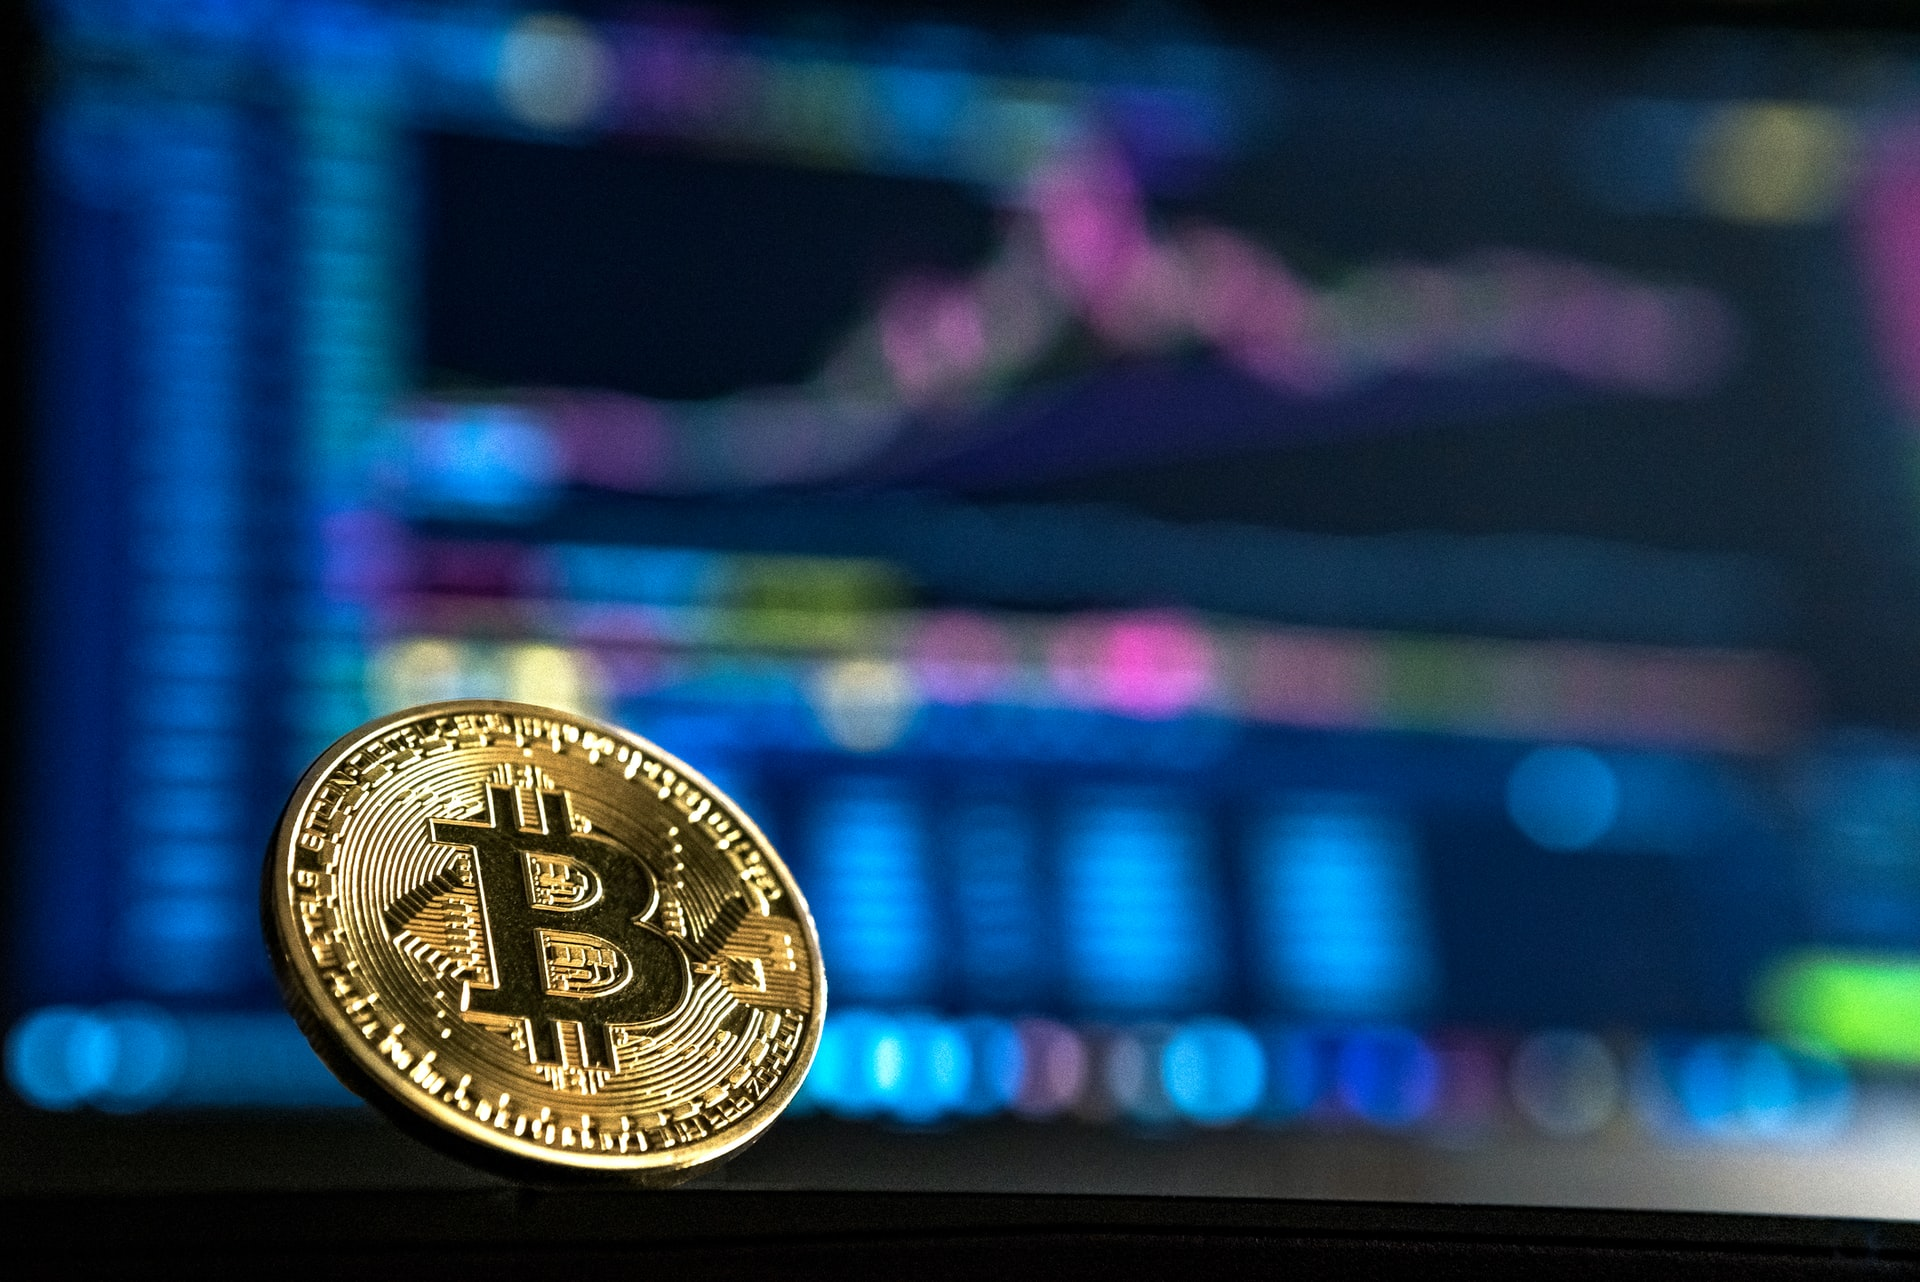 Bitcoin Price Fluctuation Header Image